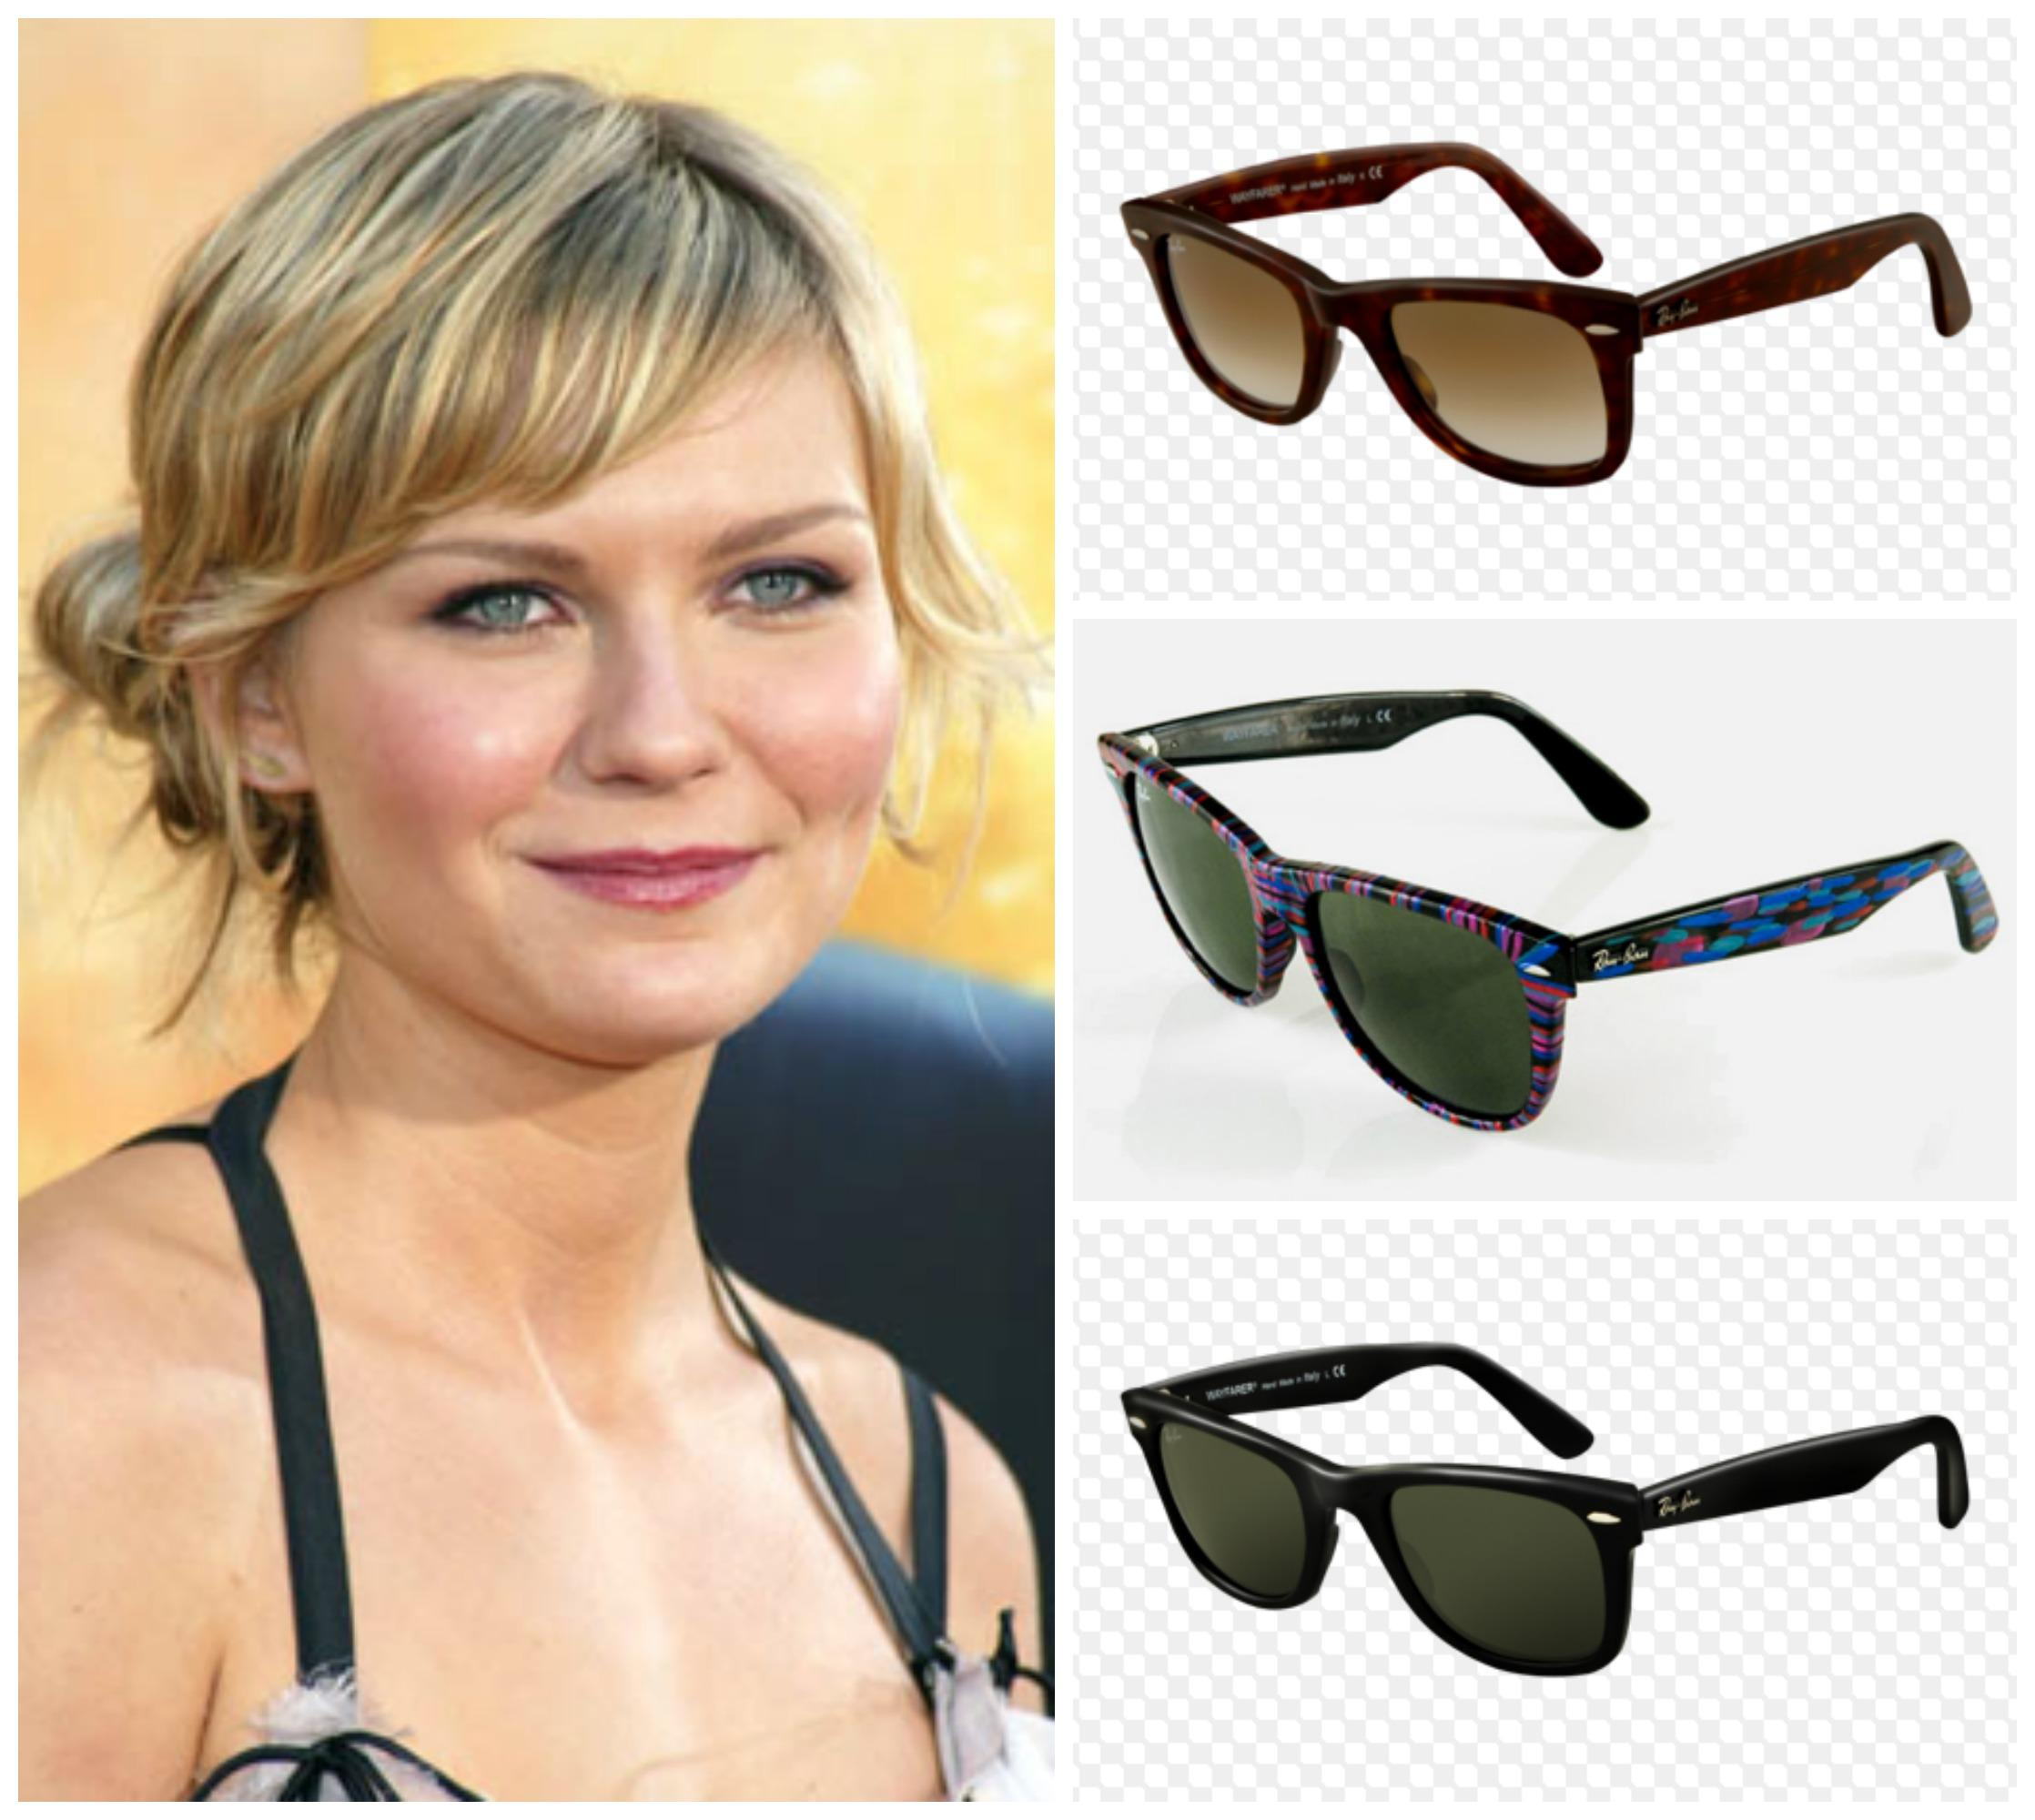 b1750af9d1b Best Sunglasses for Females with Round Faces